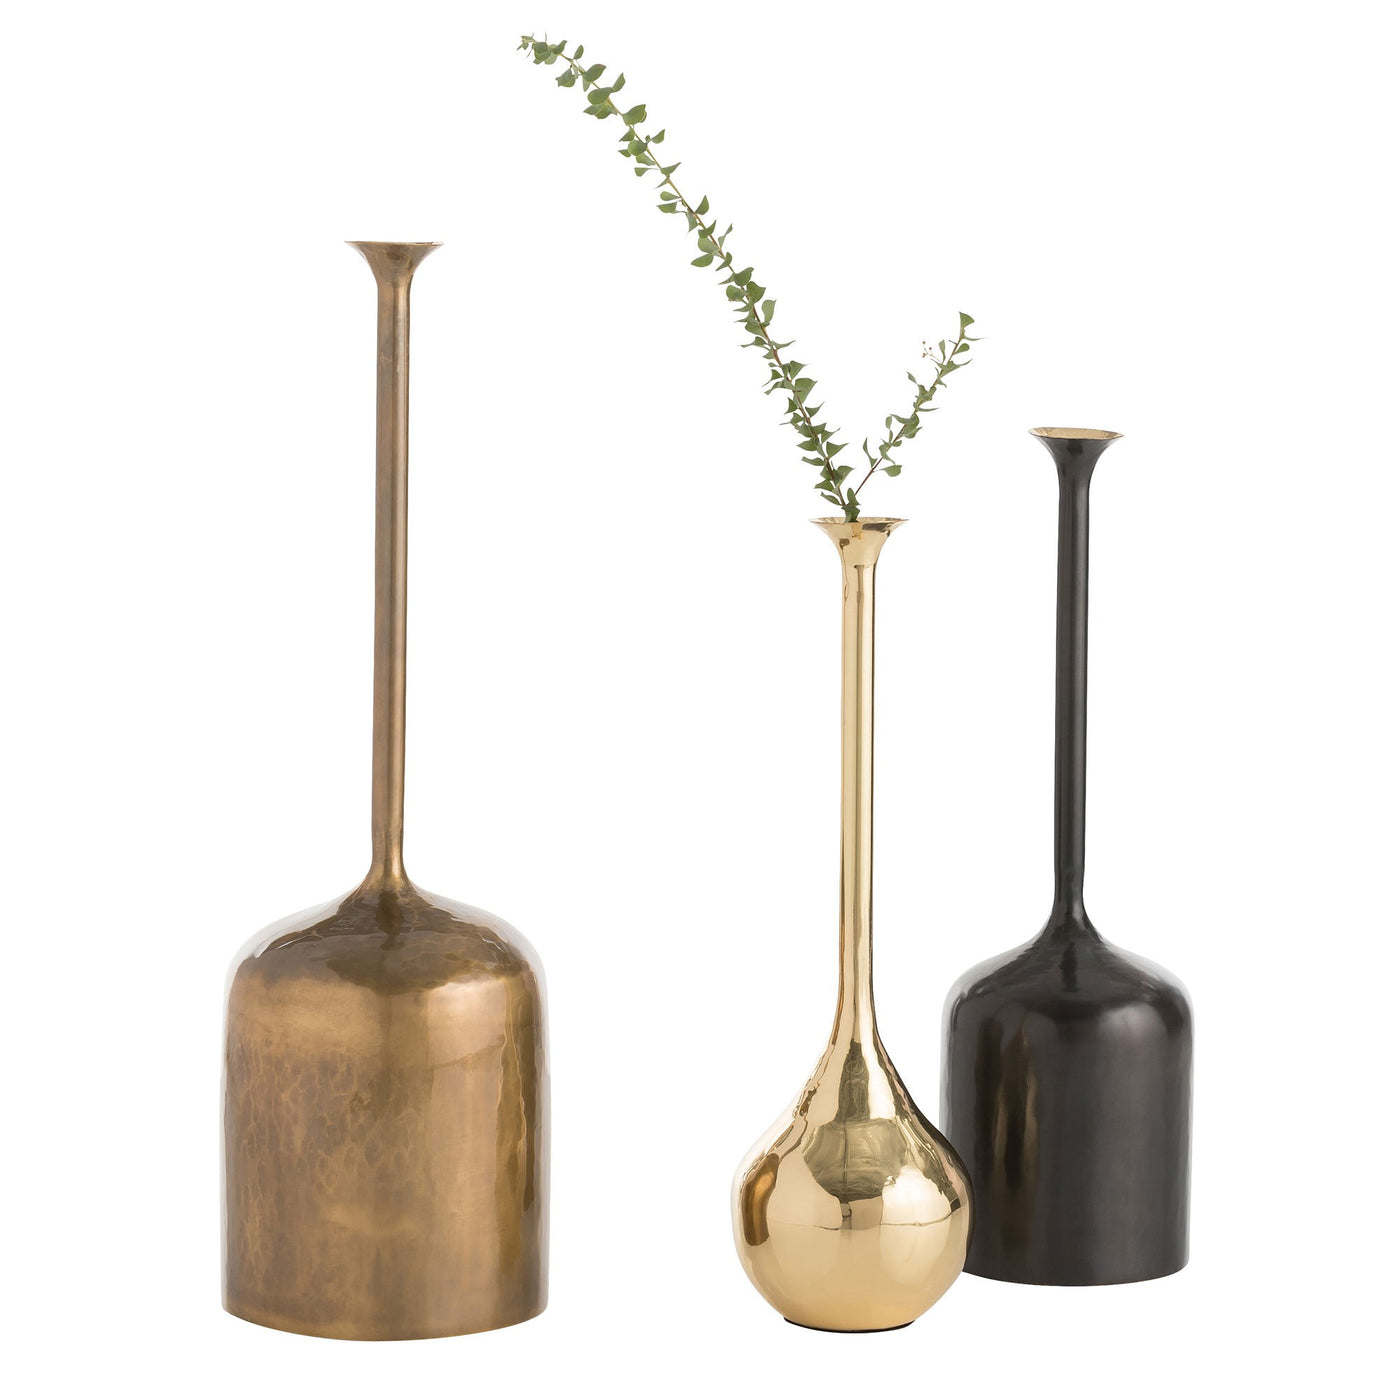 arteriors home harris vessels set of 3 with plants